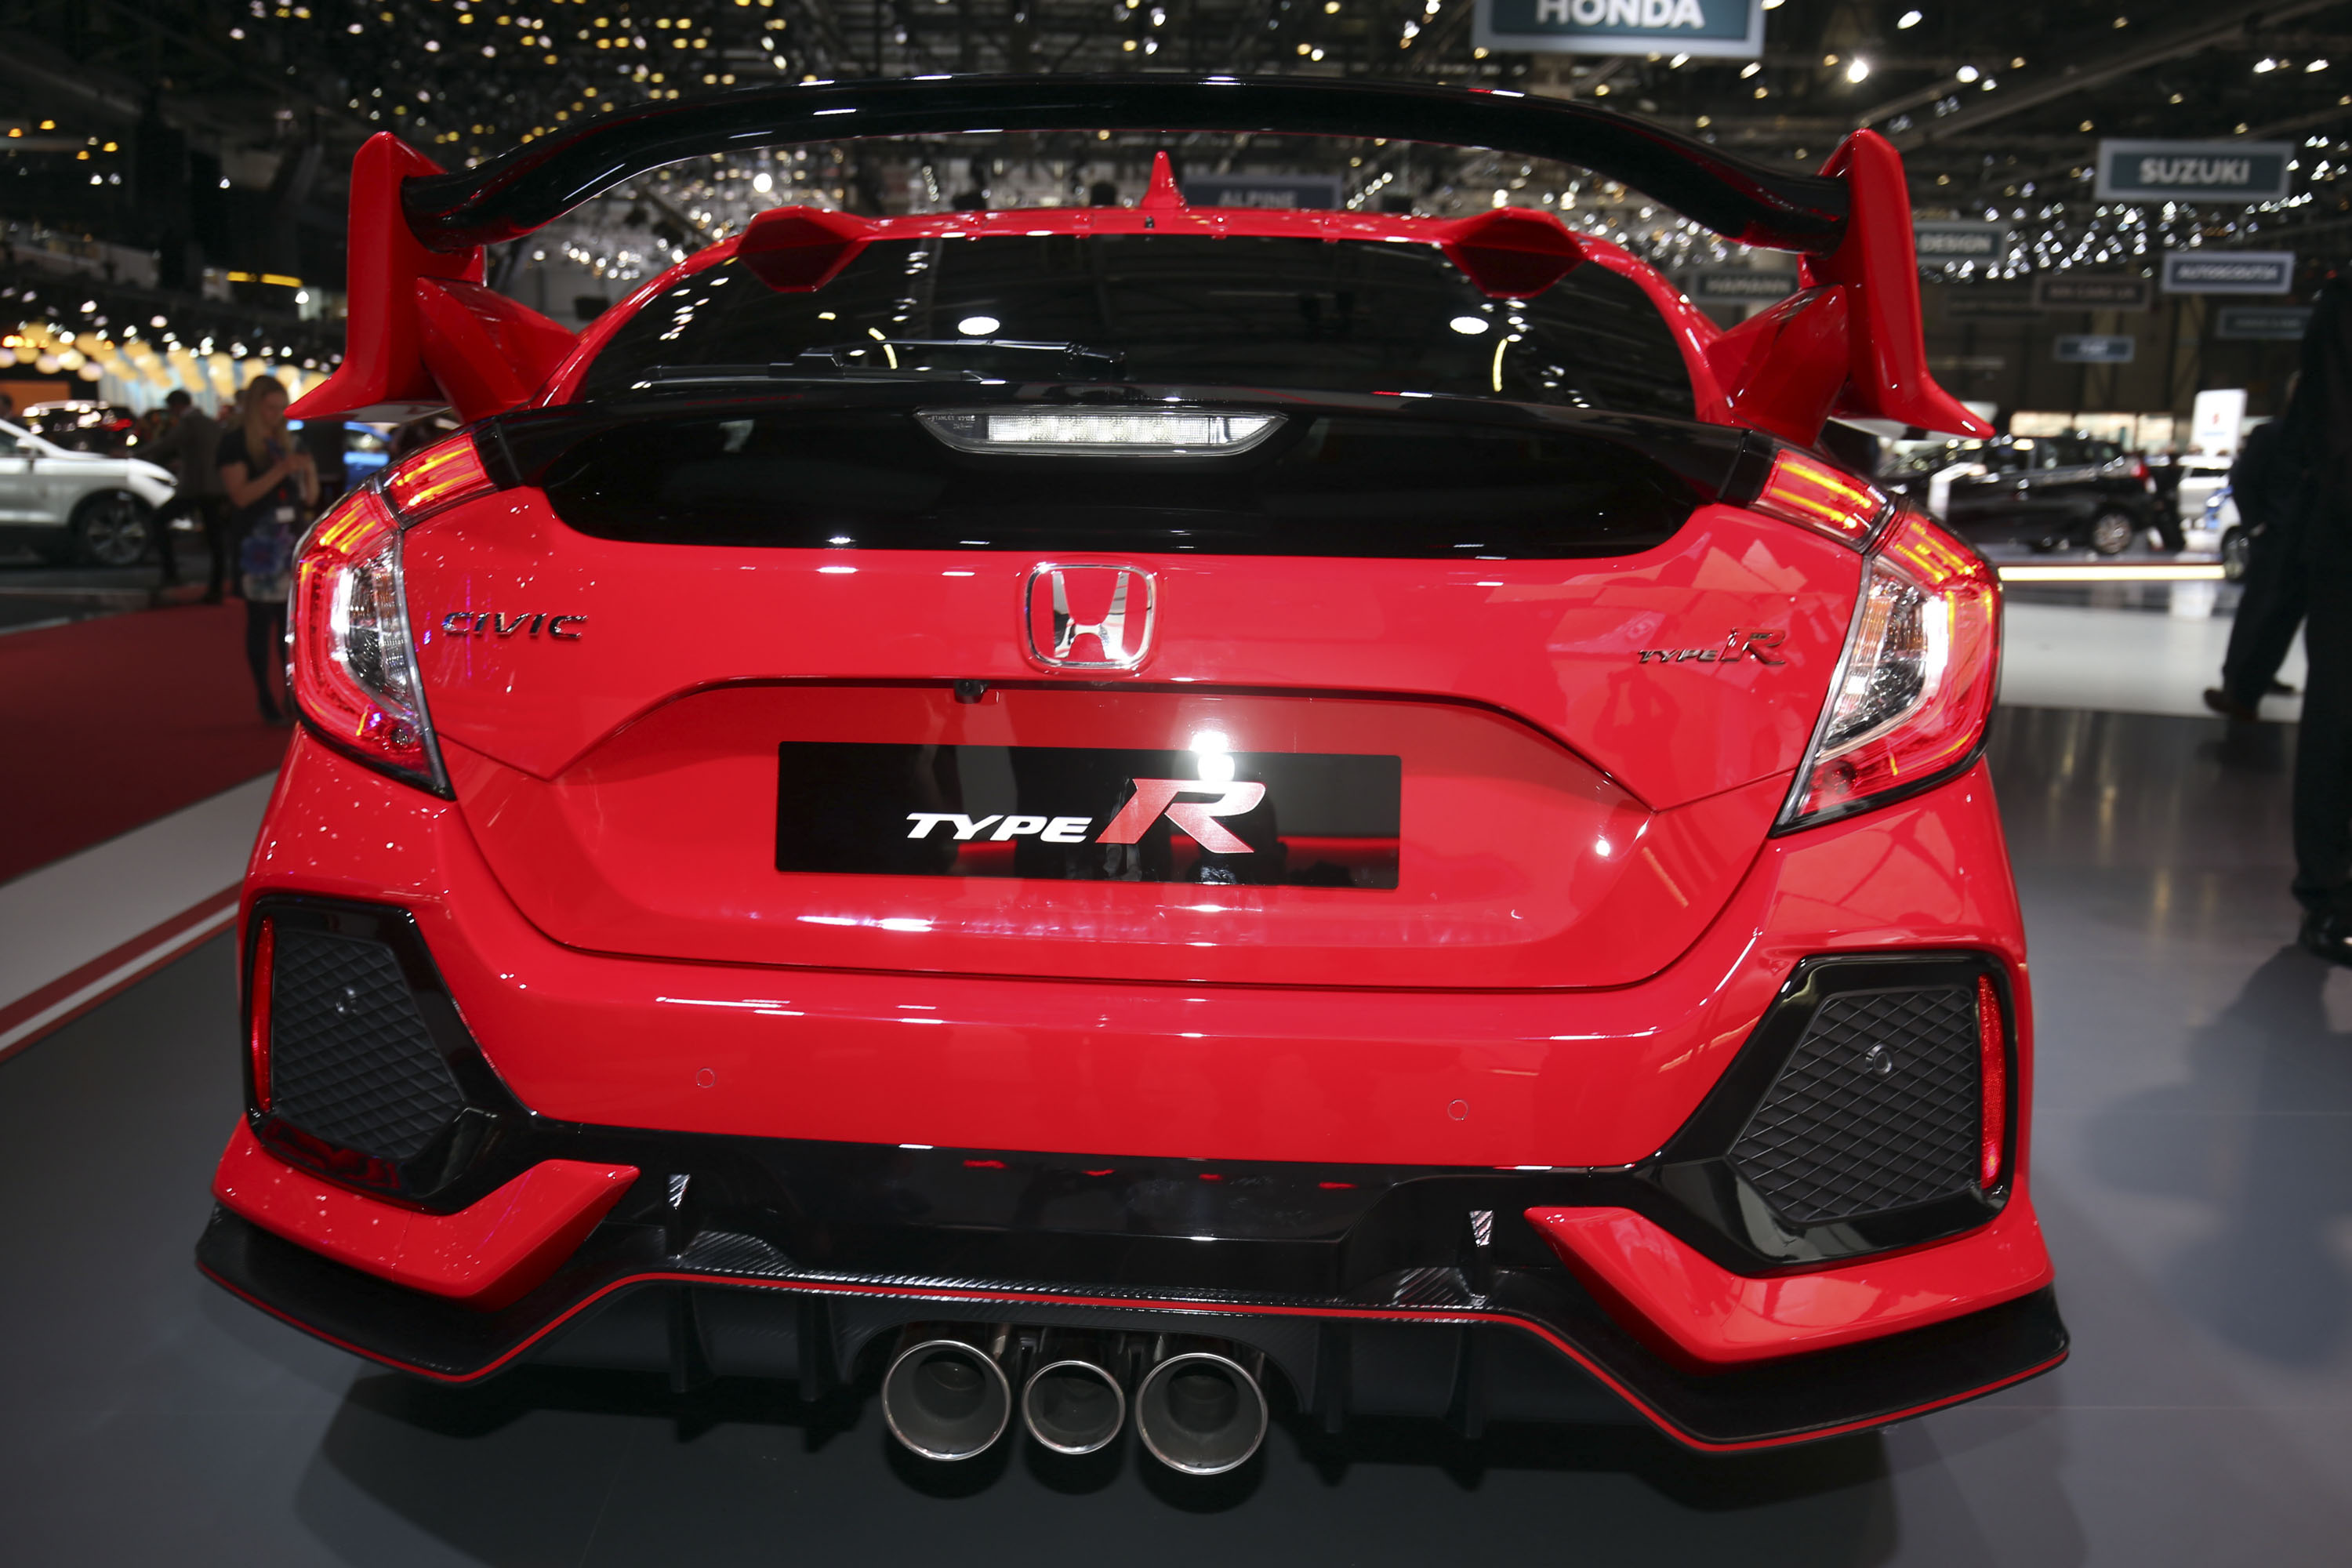 2017 honda civic type r gallery 710684 top speed. Black Bedroom Furniture Sets. Home Design Ideas